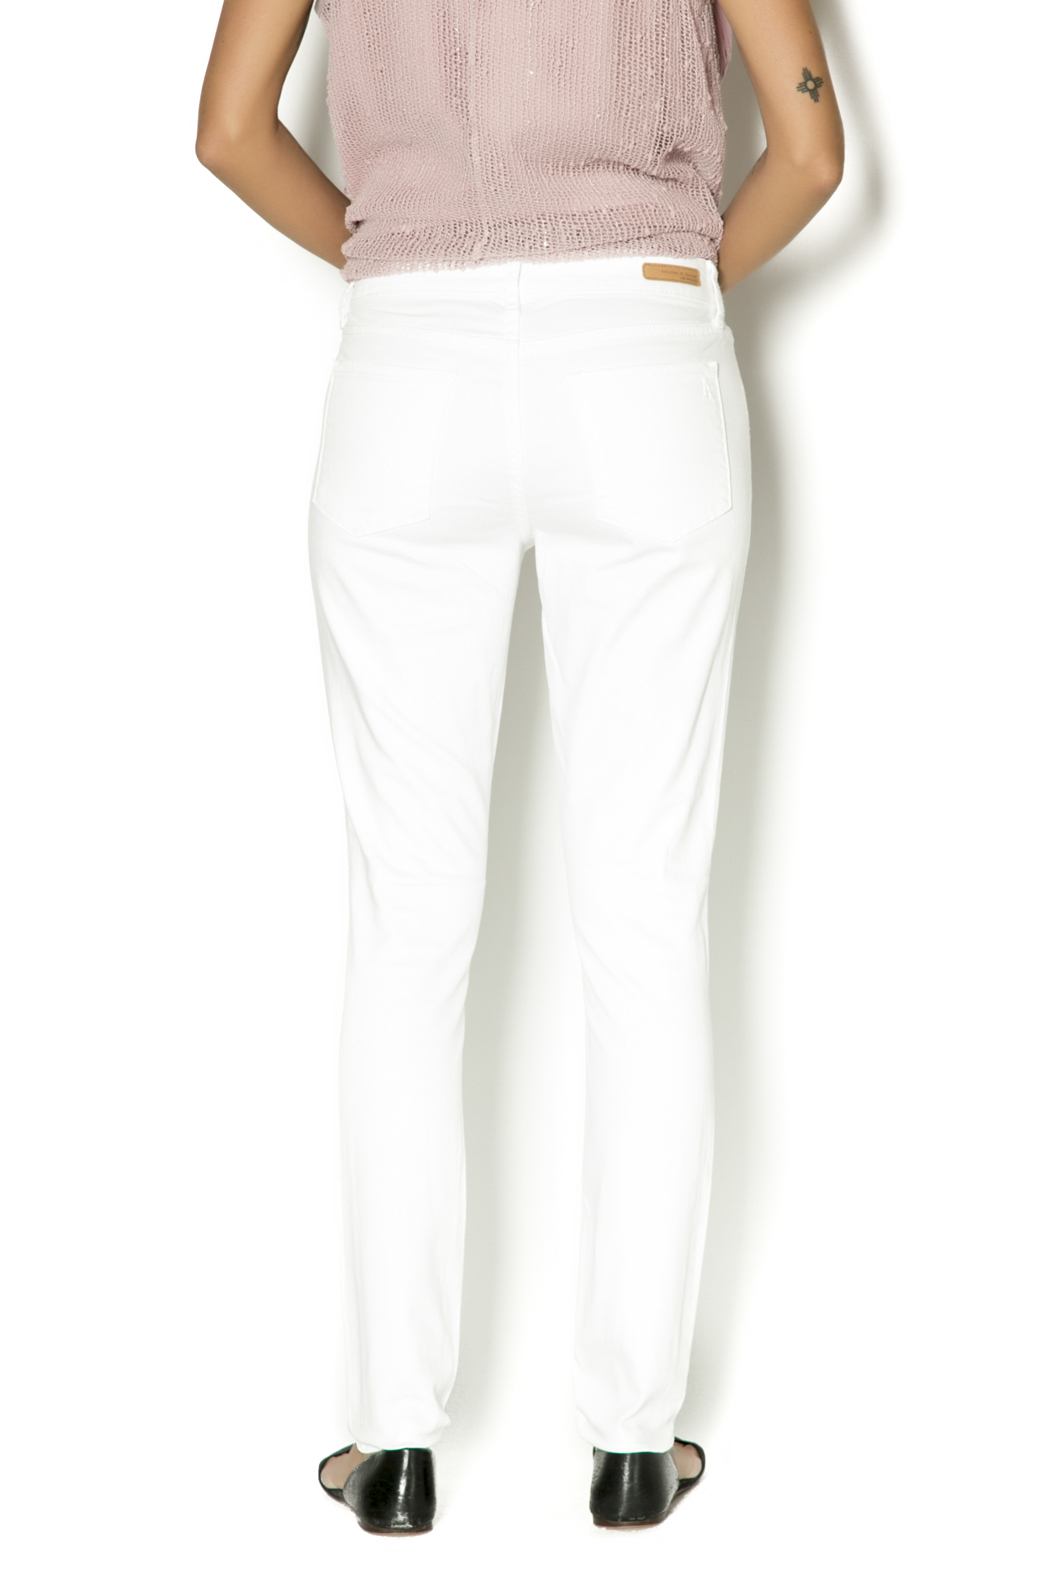 Articles of Society White Skinny Jeans - Back Cropped Image